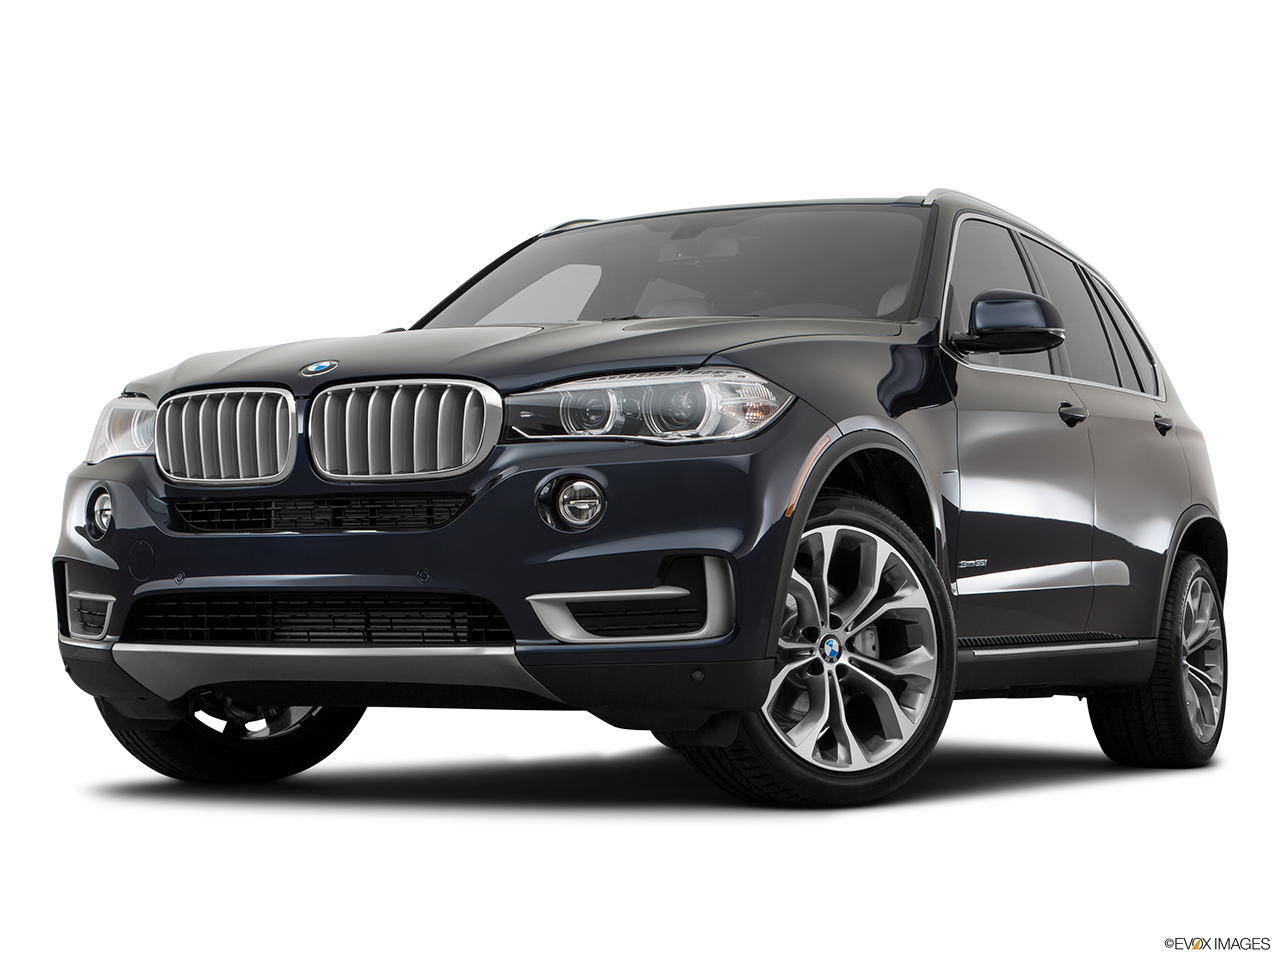 2017 Bmw X5 Prices In Uae Gulf Specs Amp Reviews For Dubai